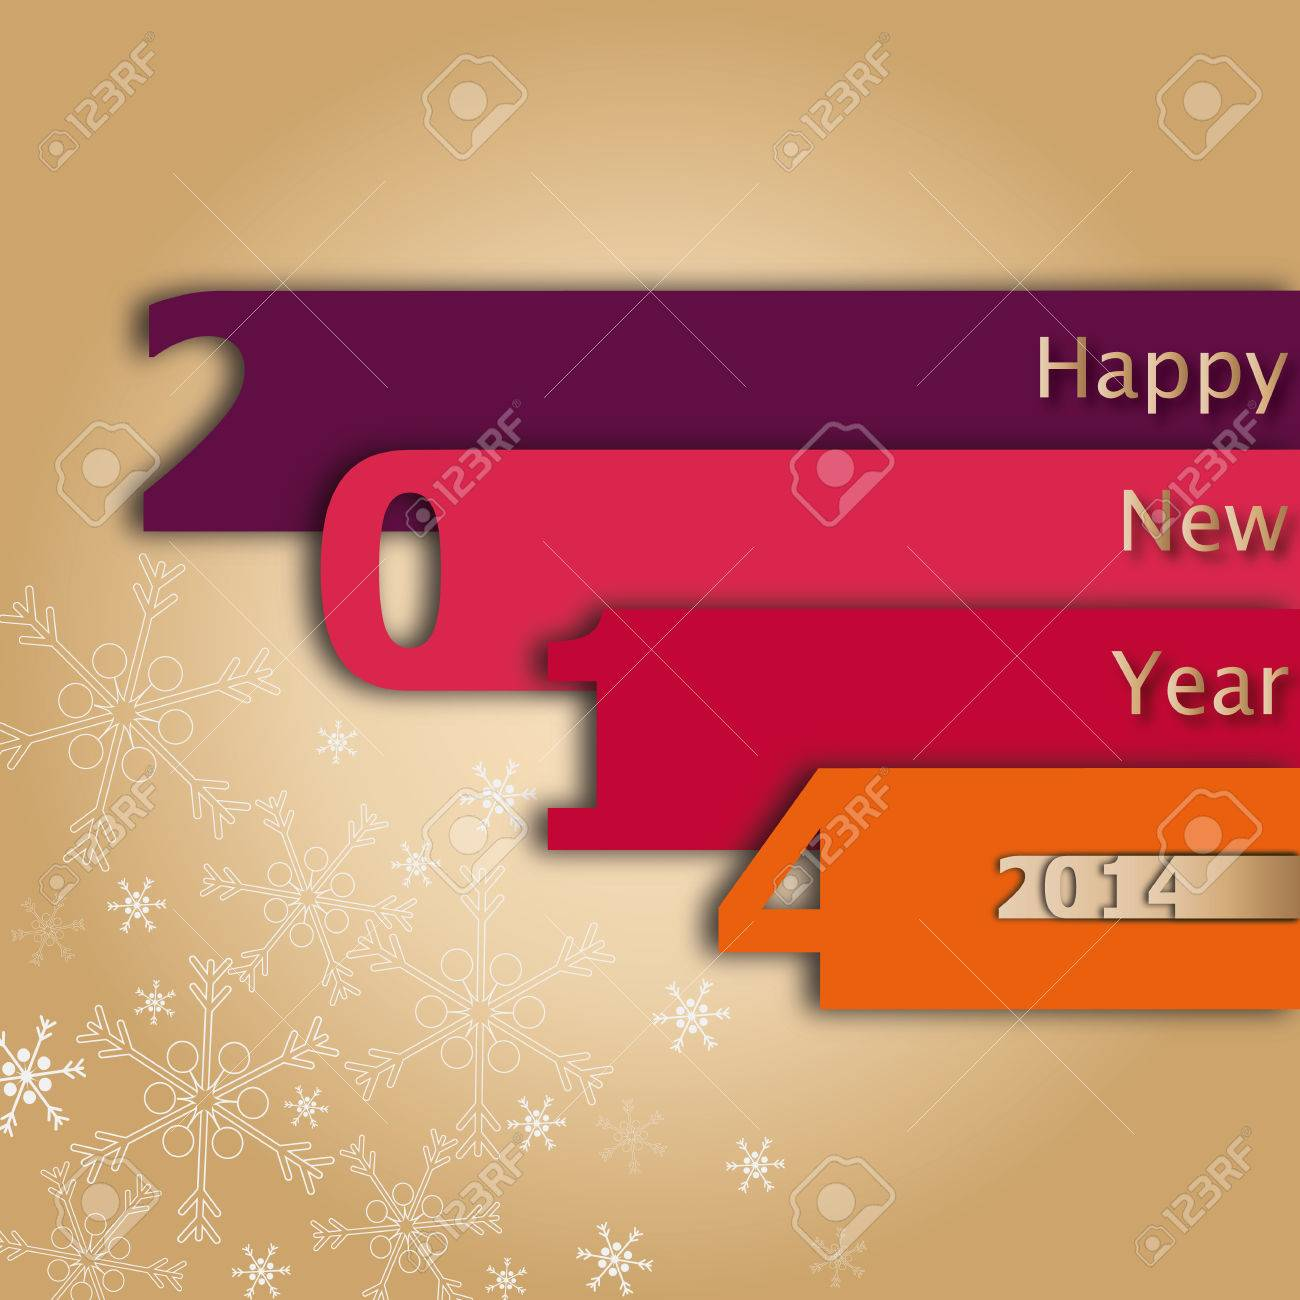 2014 happy new year greeting card or background royalty free 2014 happy new year greeting card or background stock vector 24365934 m4hsunfo